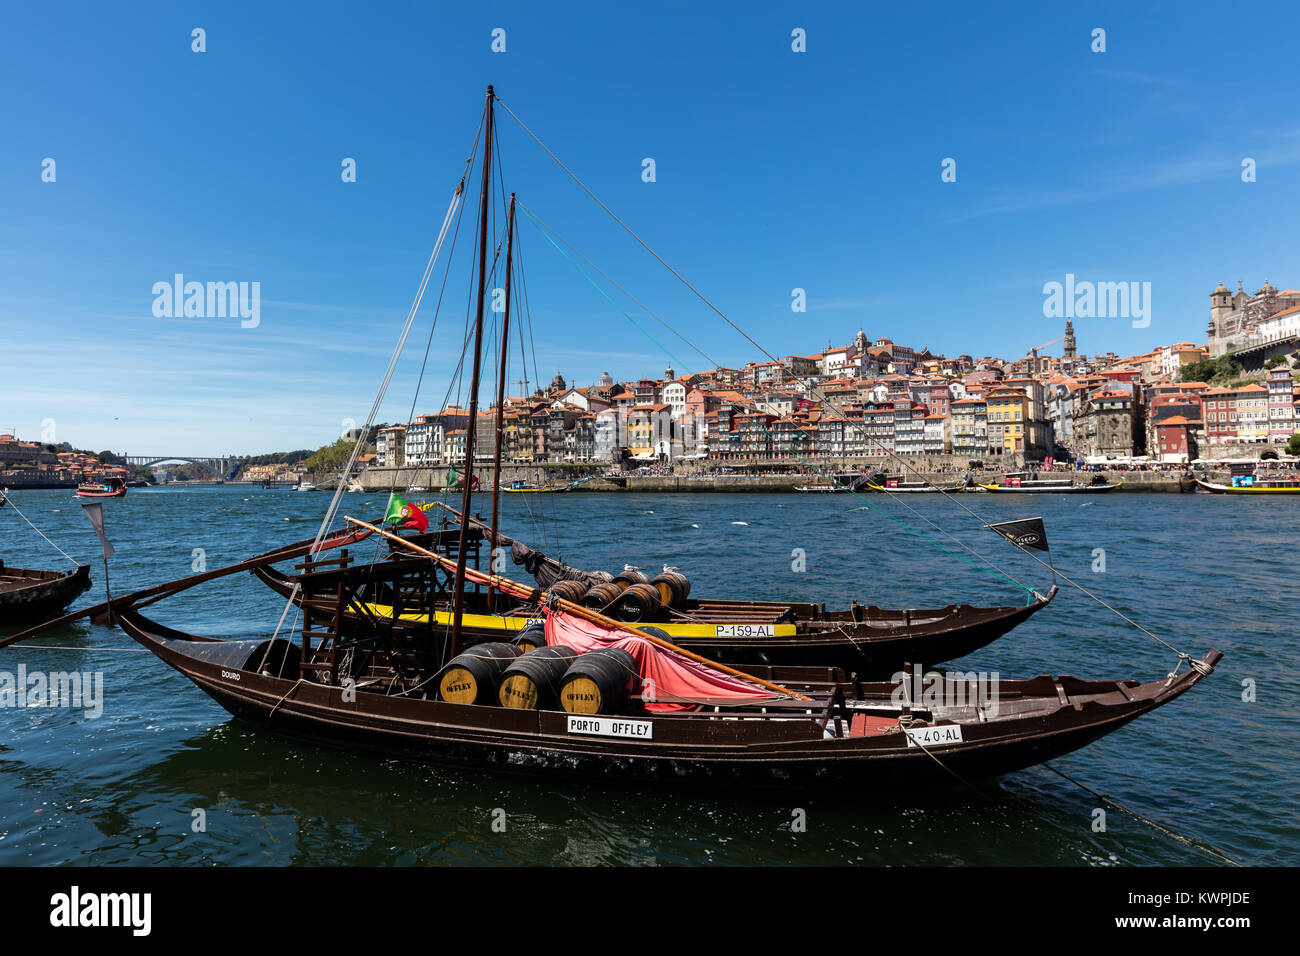 Porto, Portugal, August 15, 2017: Rabelo boats, one of the most popular symbols of Porto, used to carry barrels - Stock Image